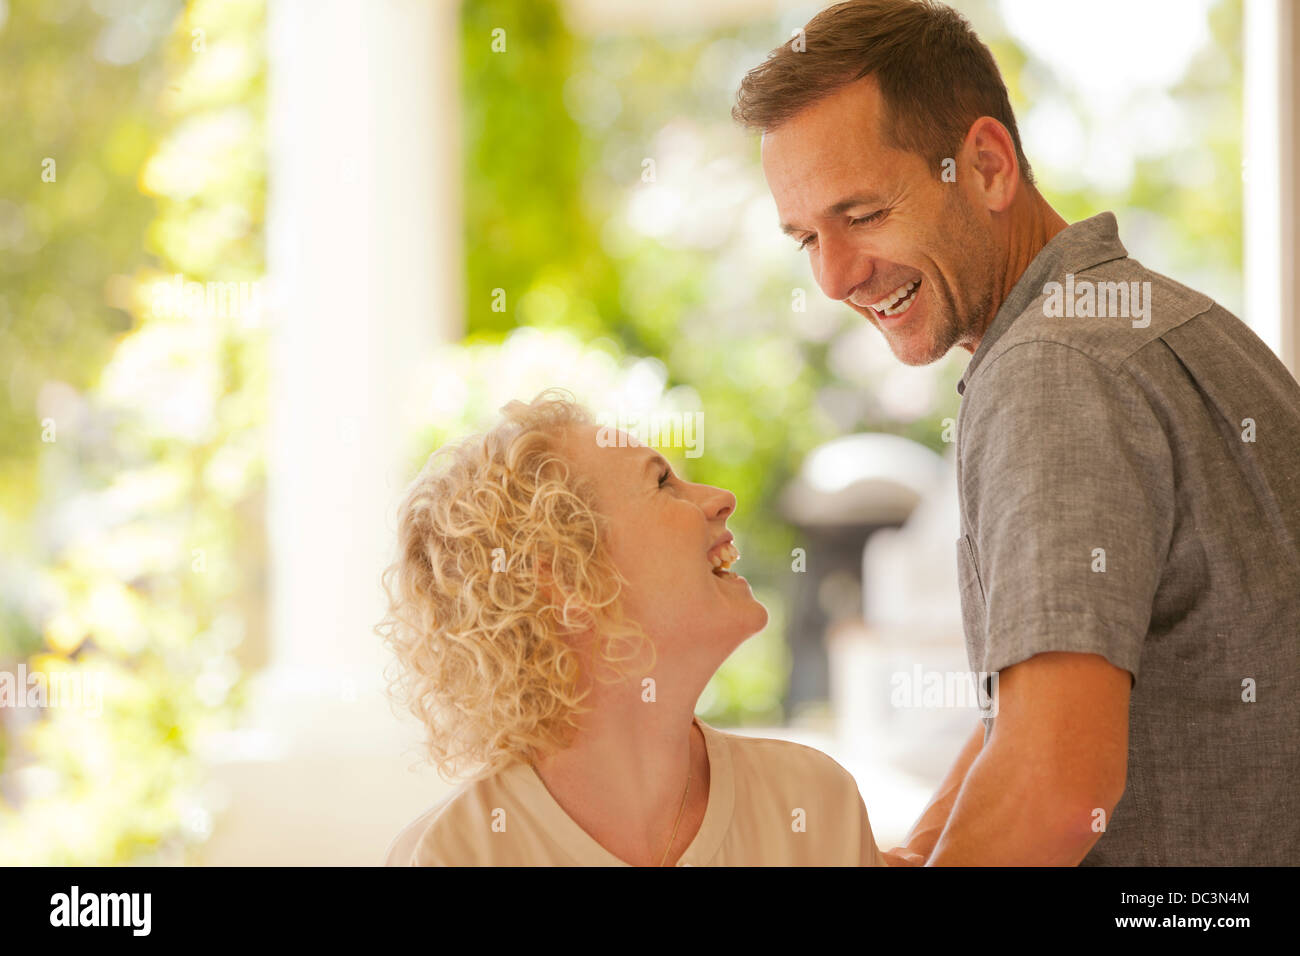 Laughing couple on patio Photo Stock